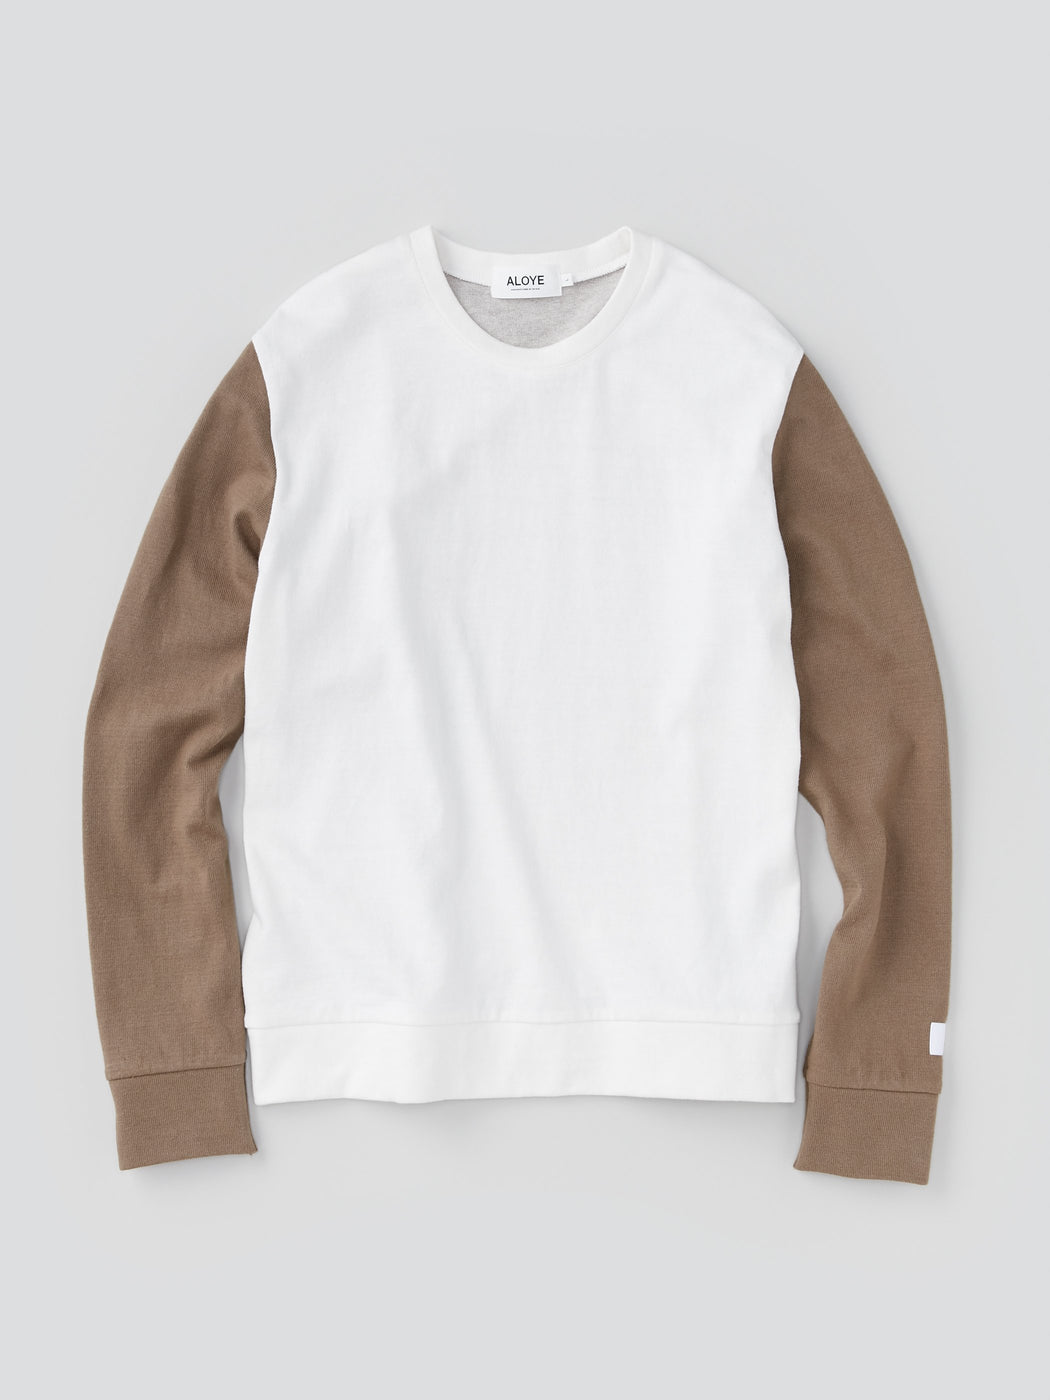 ALOYE G.F.G.S. Men's Cotton Knitted Sweater Off white and Khaki